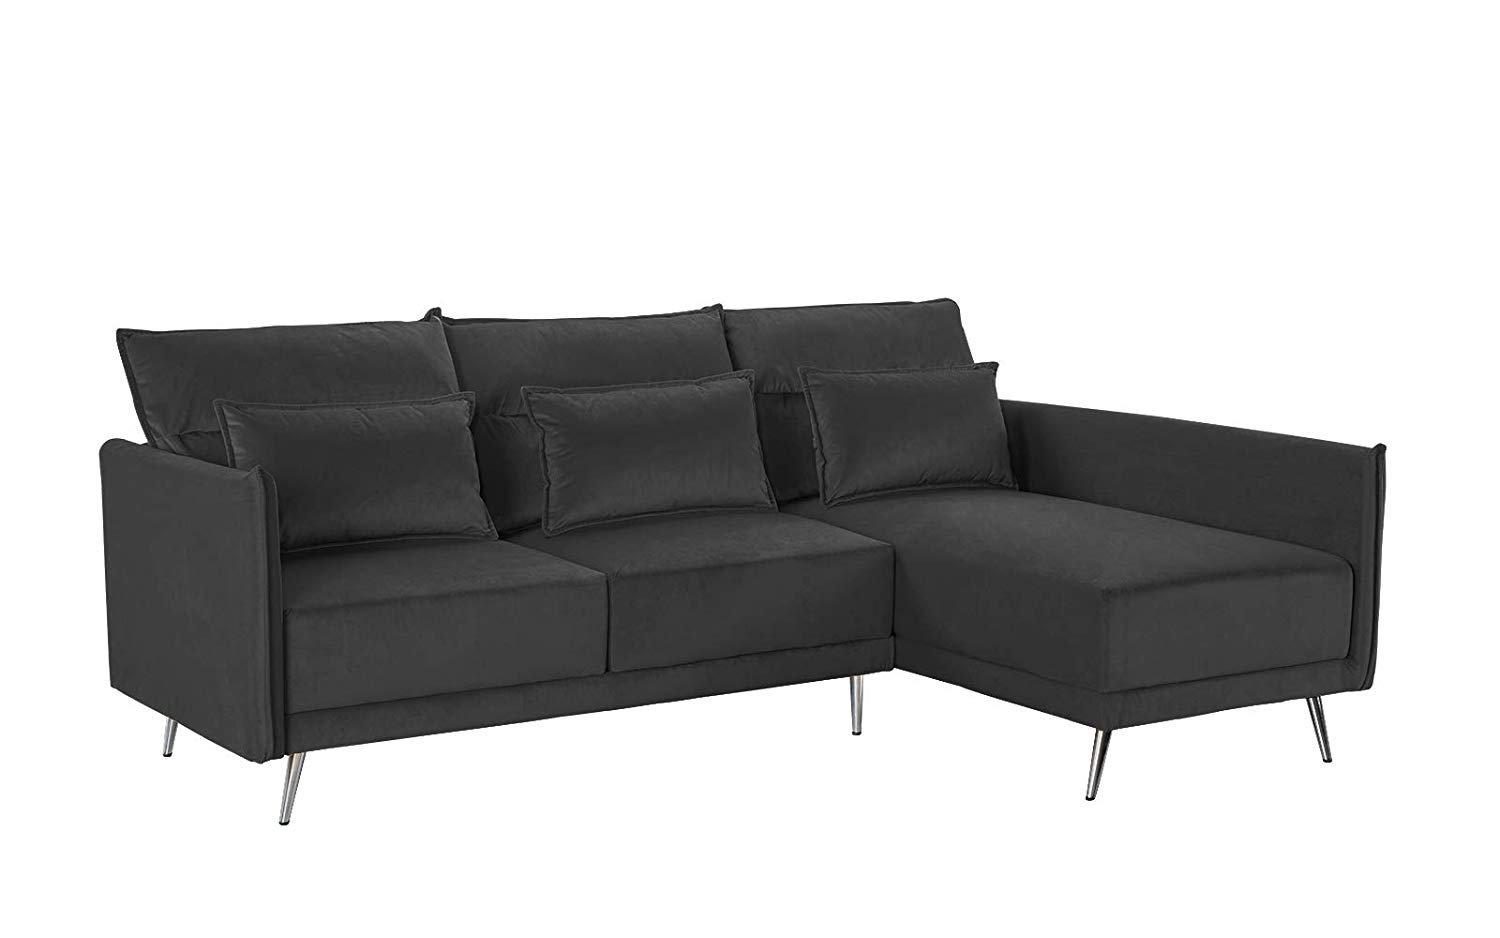 Sensational Details About Mid Century Velvet Small Living Room Sectional Sofa 88 1 Inch Couch Dark Grey Dailytribune Chair Design For Home Dailytribuneorg